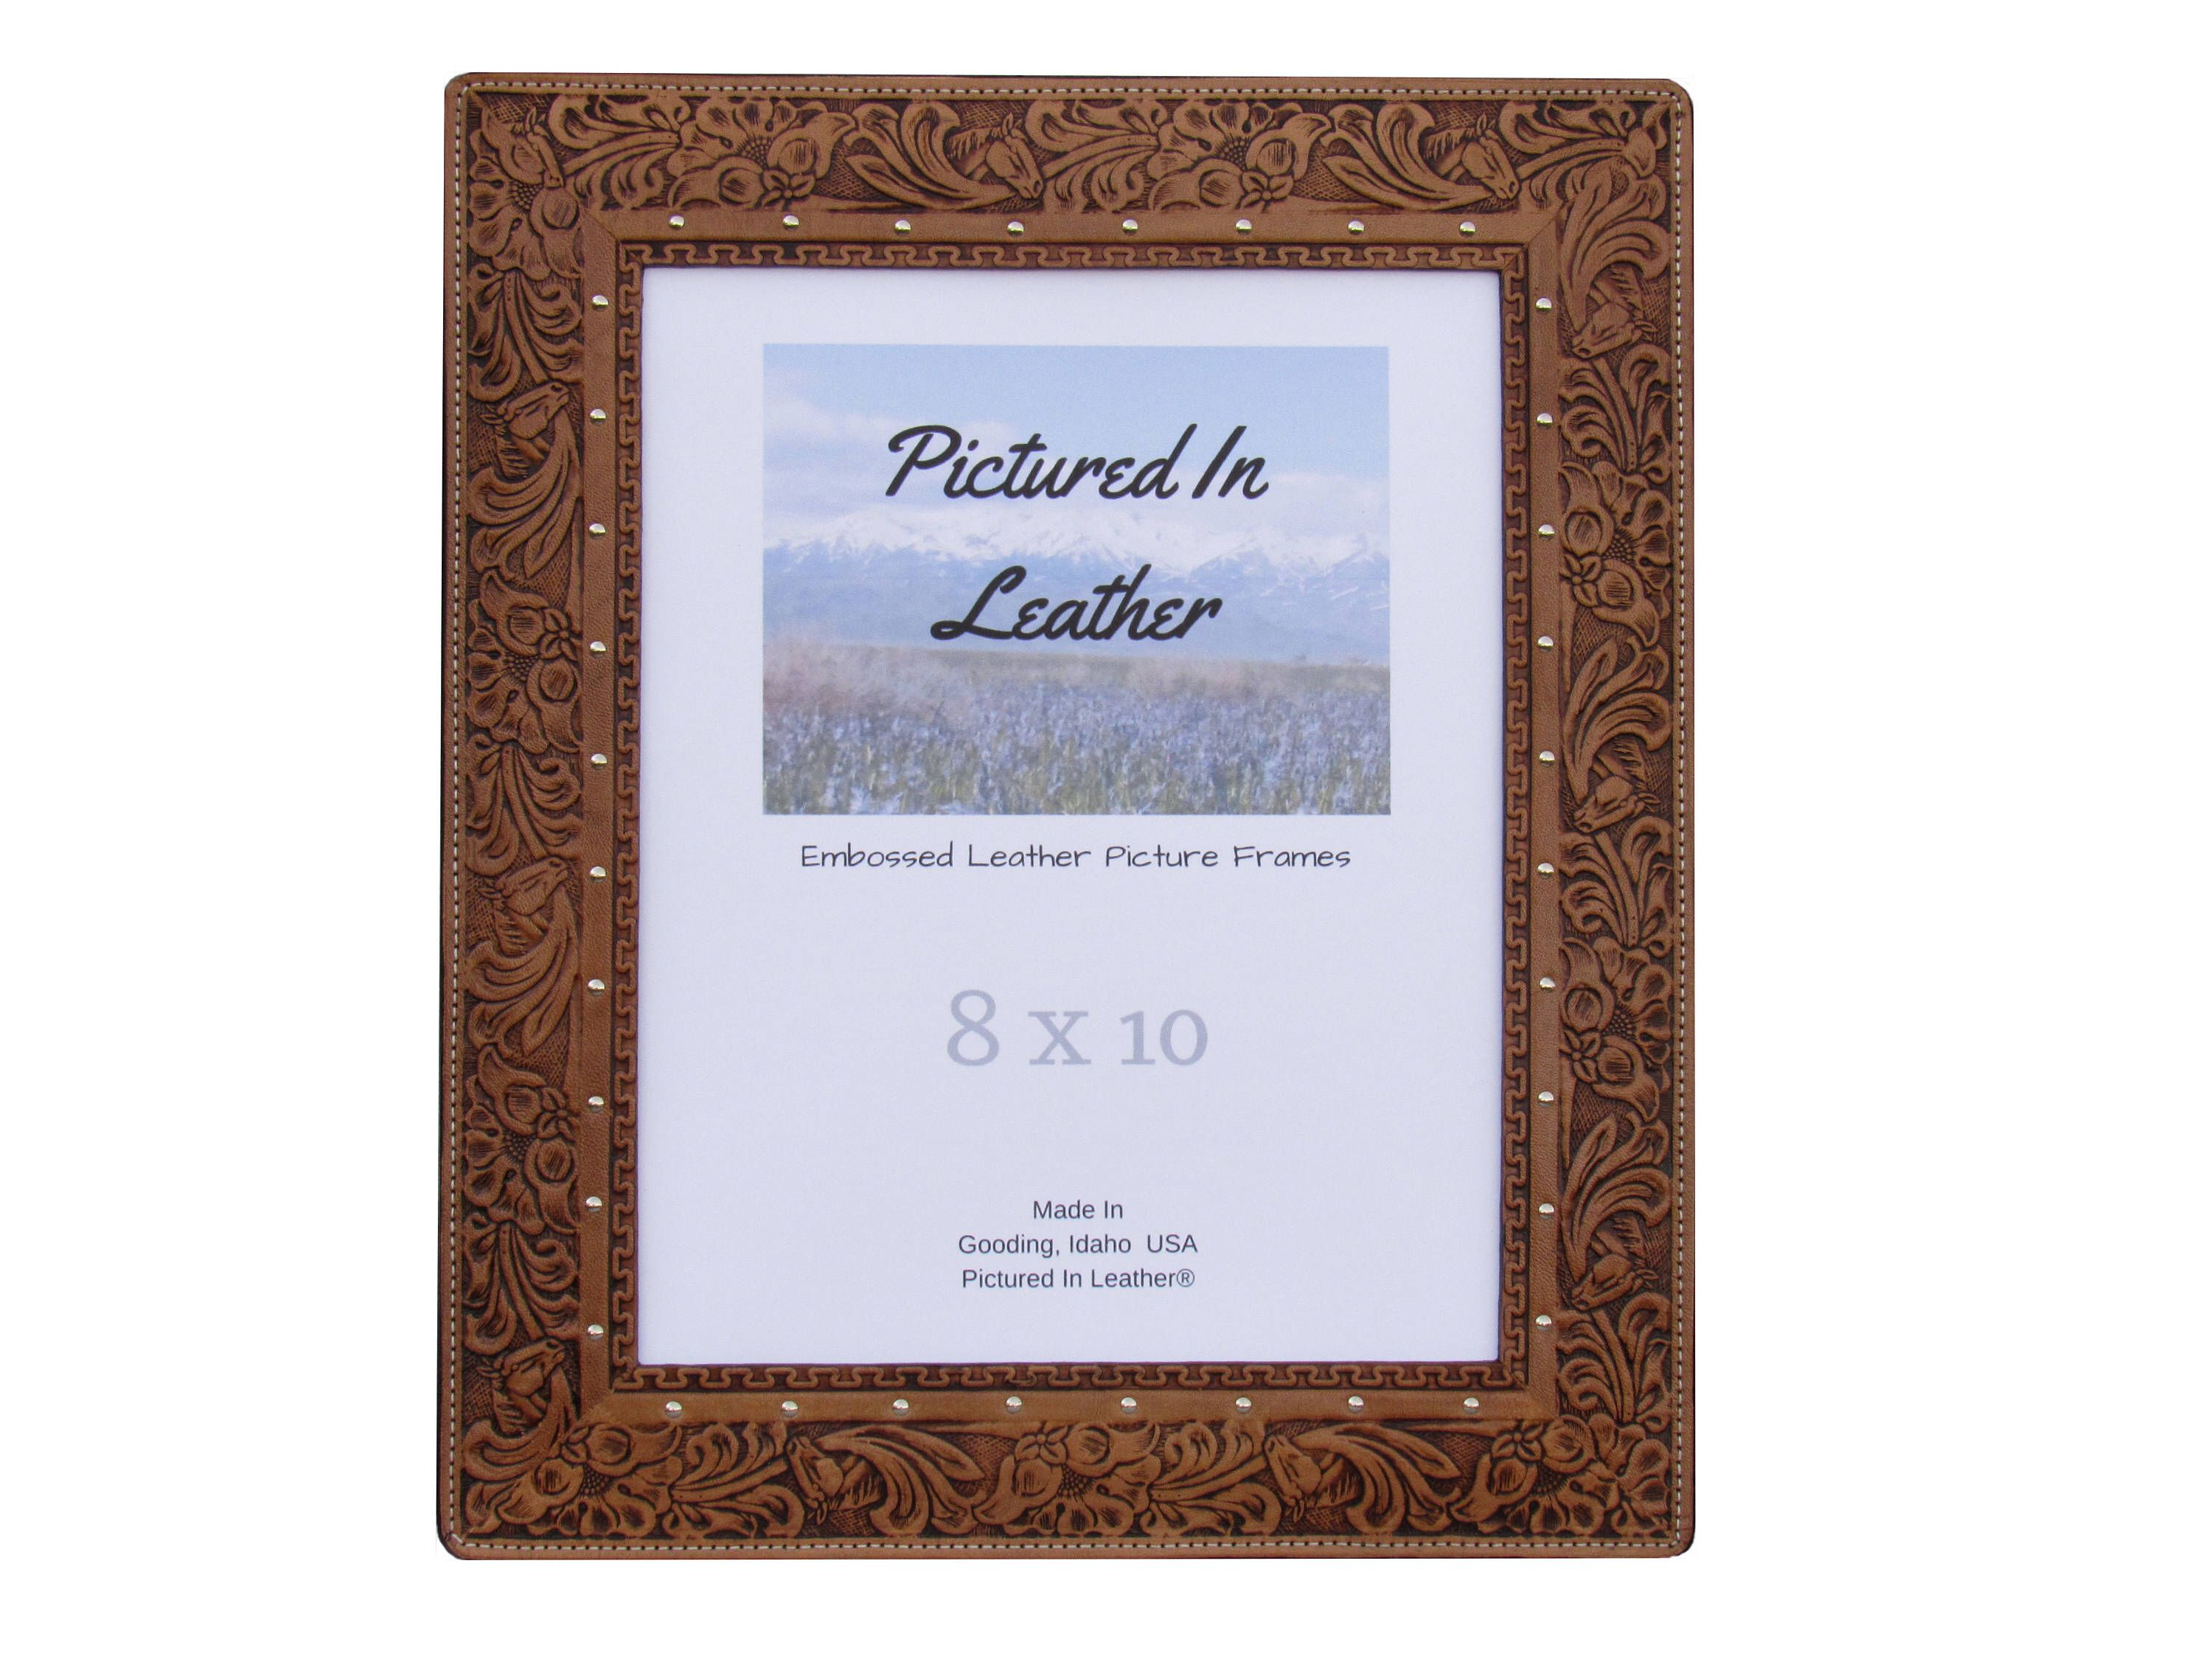 $62 8X10 Leather Picture Frame, Embossed With A Horse And